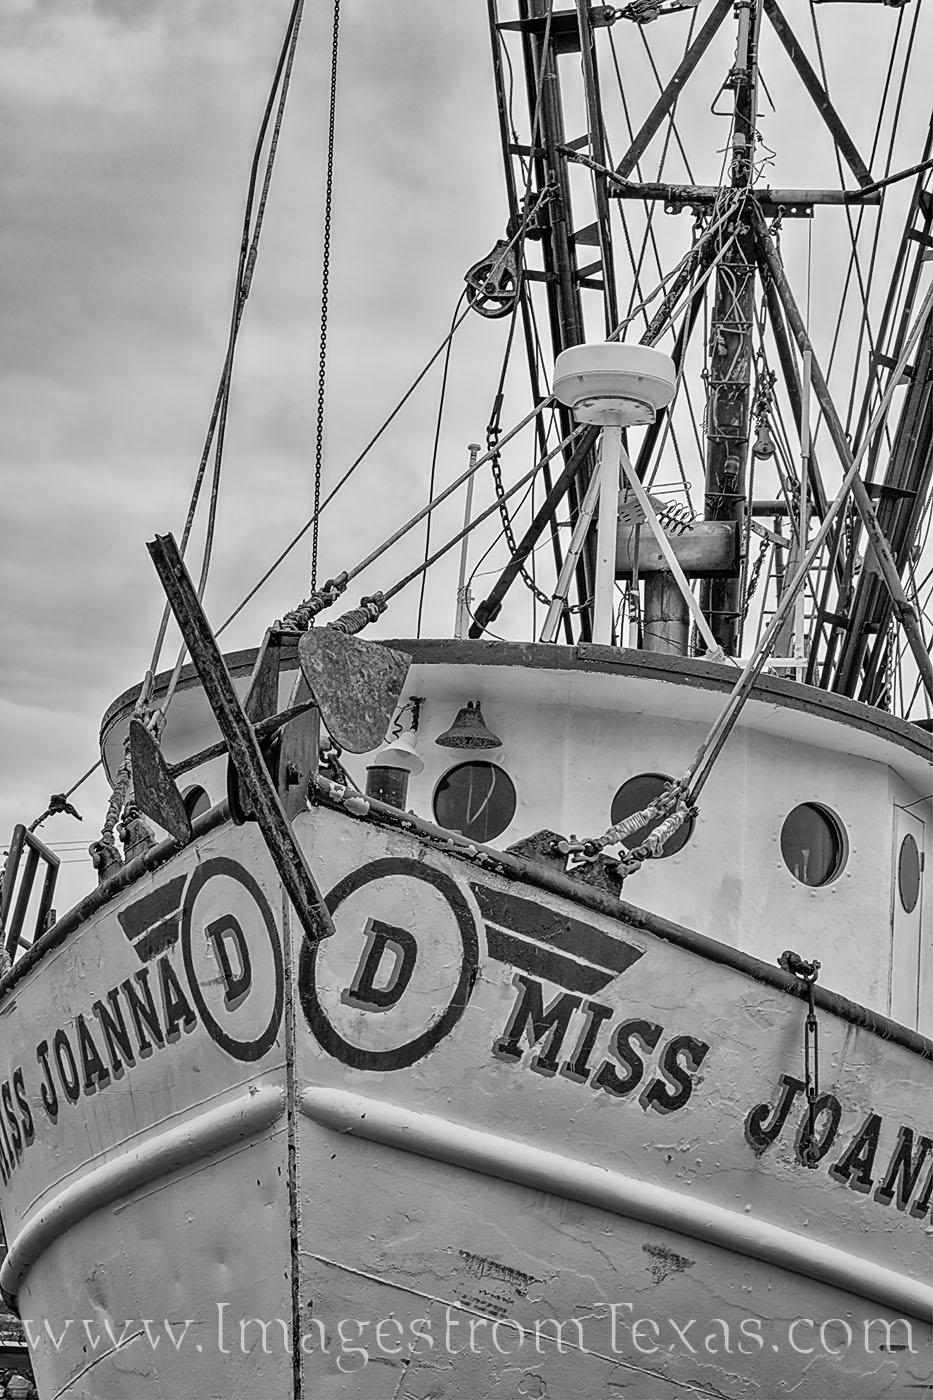 shrimp boat, black and white, texas coast, port isabel, afternoon, spring, south padre, boat, photo